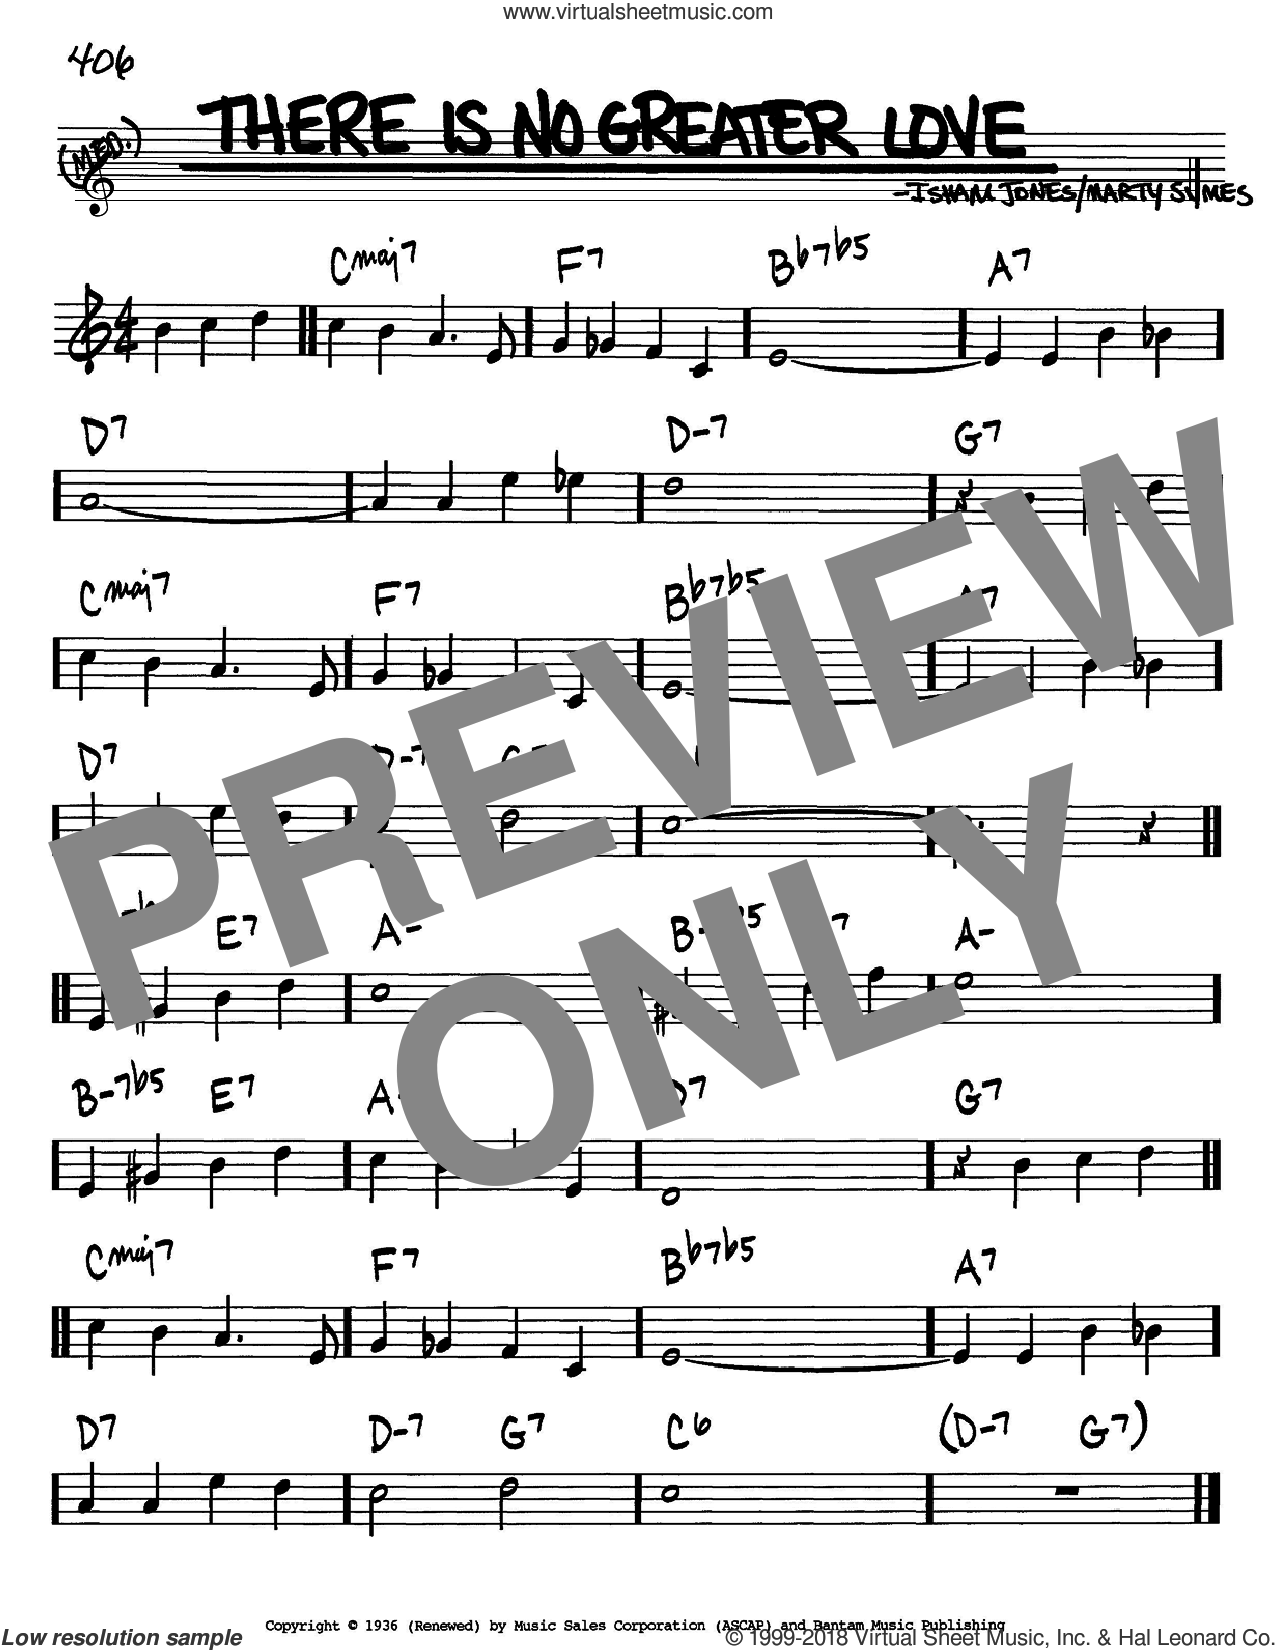 There Is No Greater Love sheet music for voice and other instruments (Bb) by Marty Symes and Isham Jones. Score Image Preview.